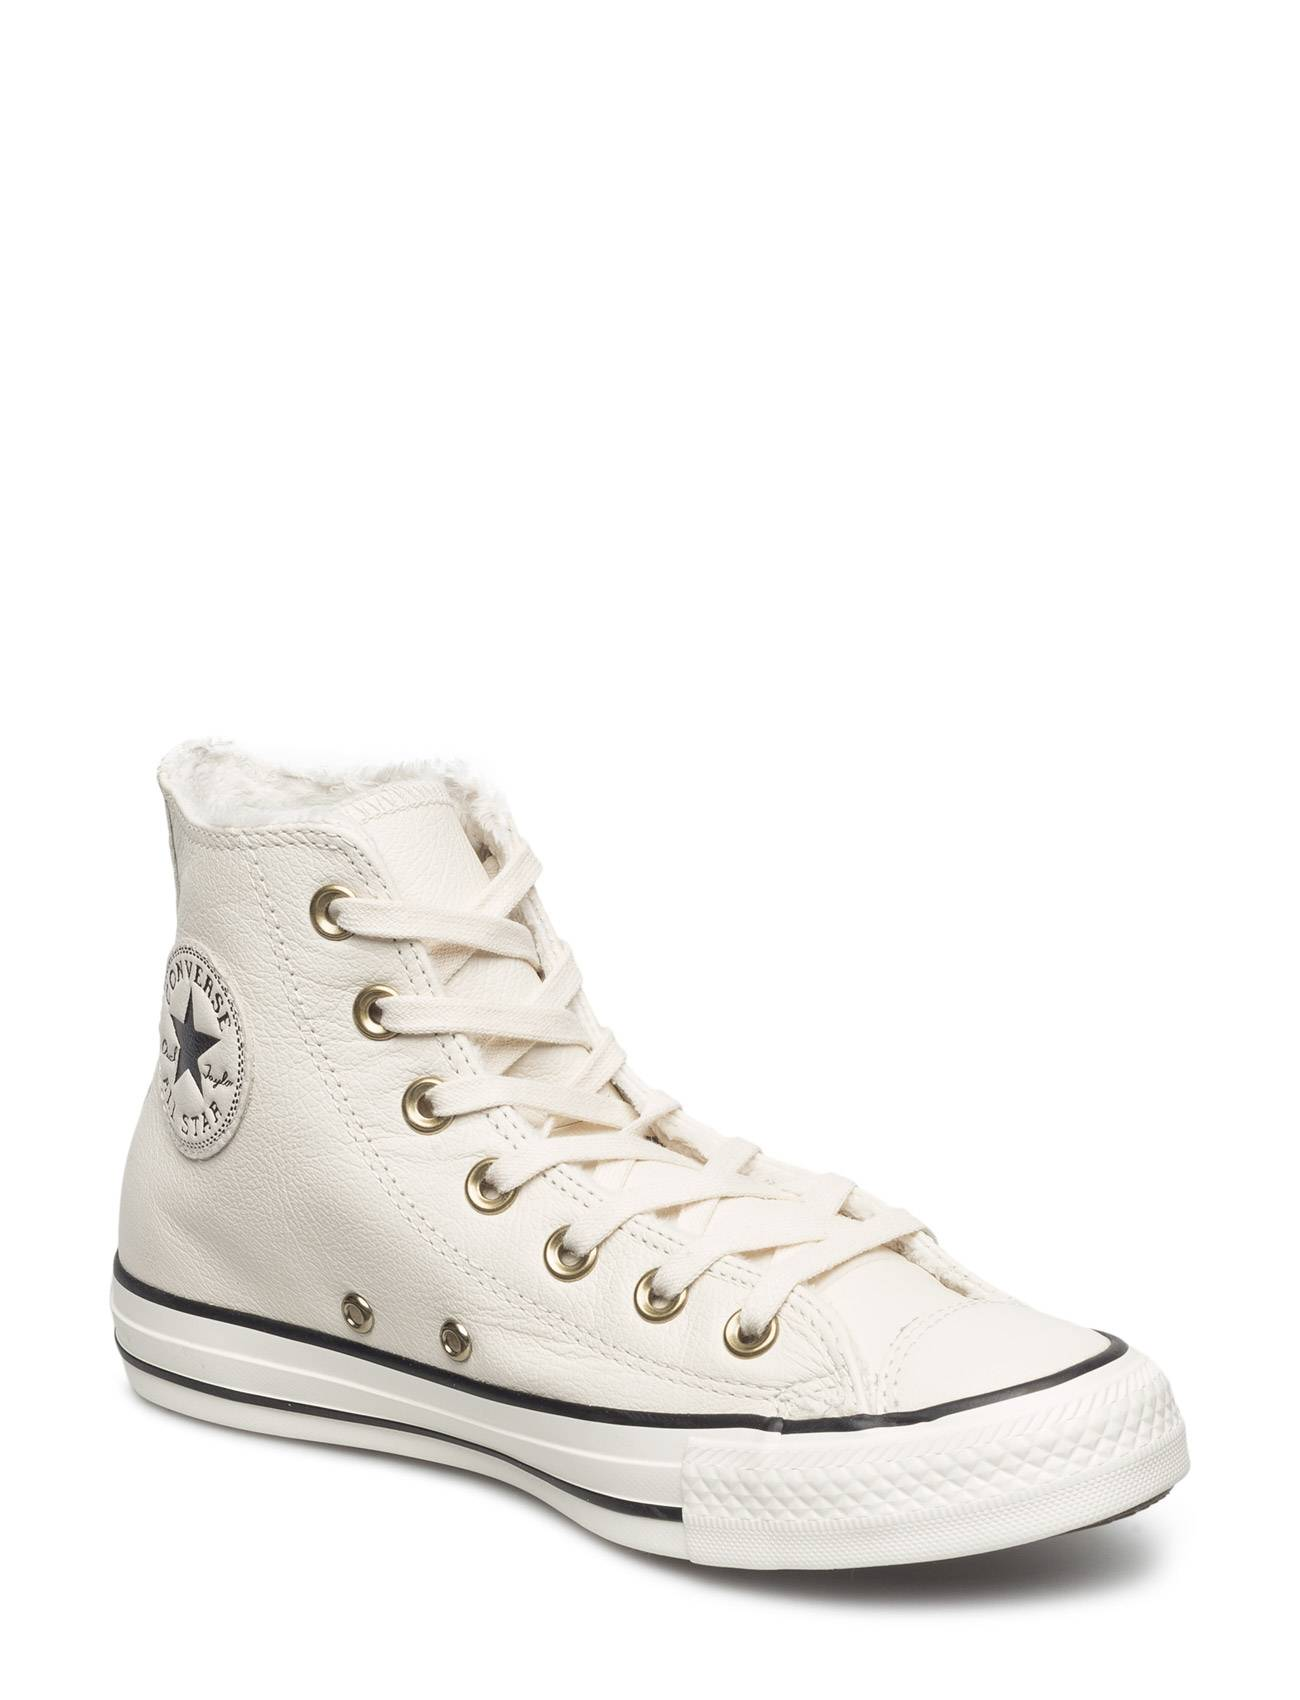 Converse As Searling Leather Wmns Hi